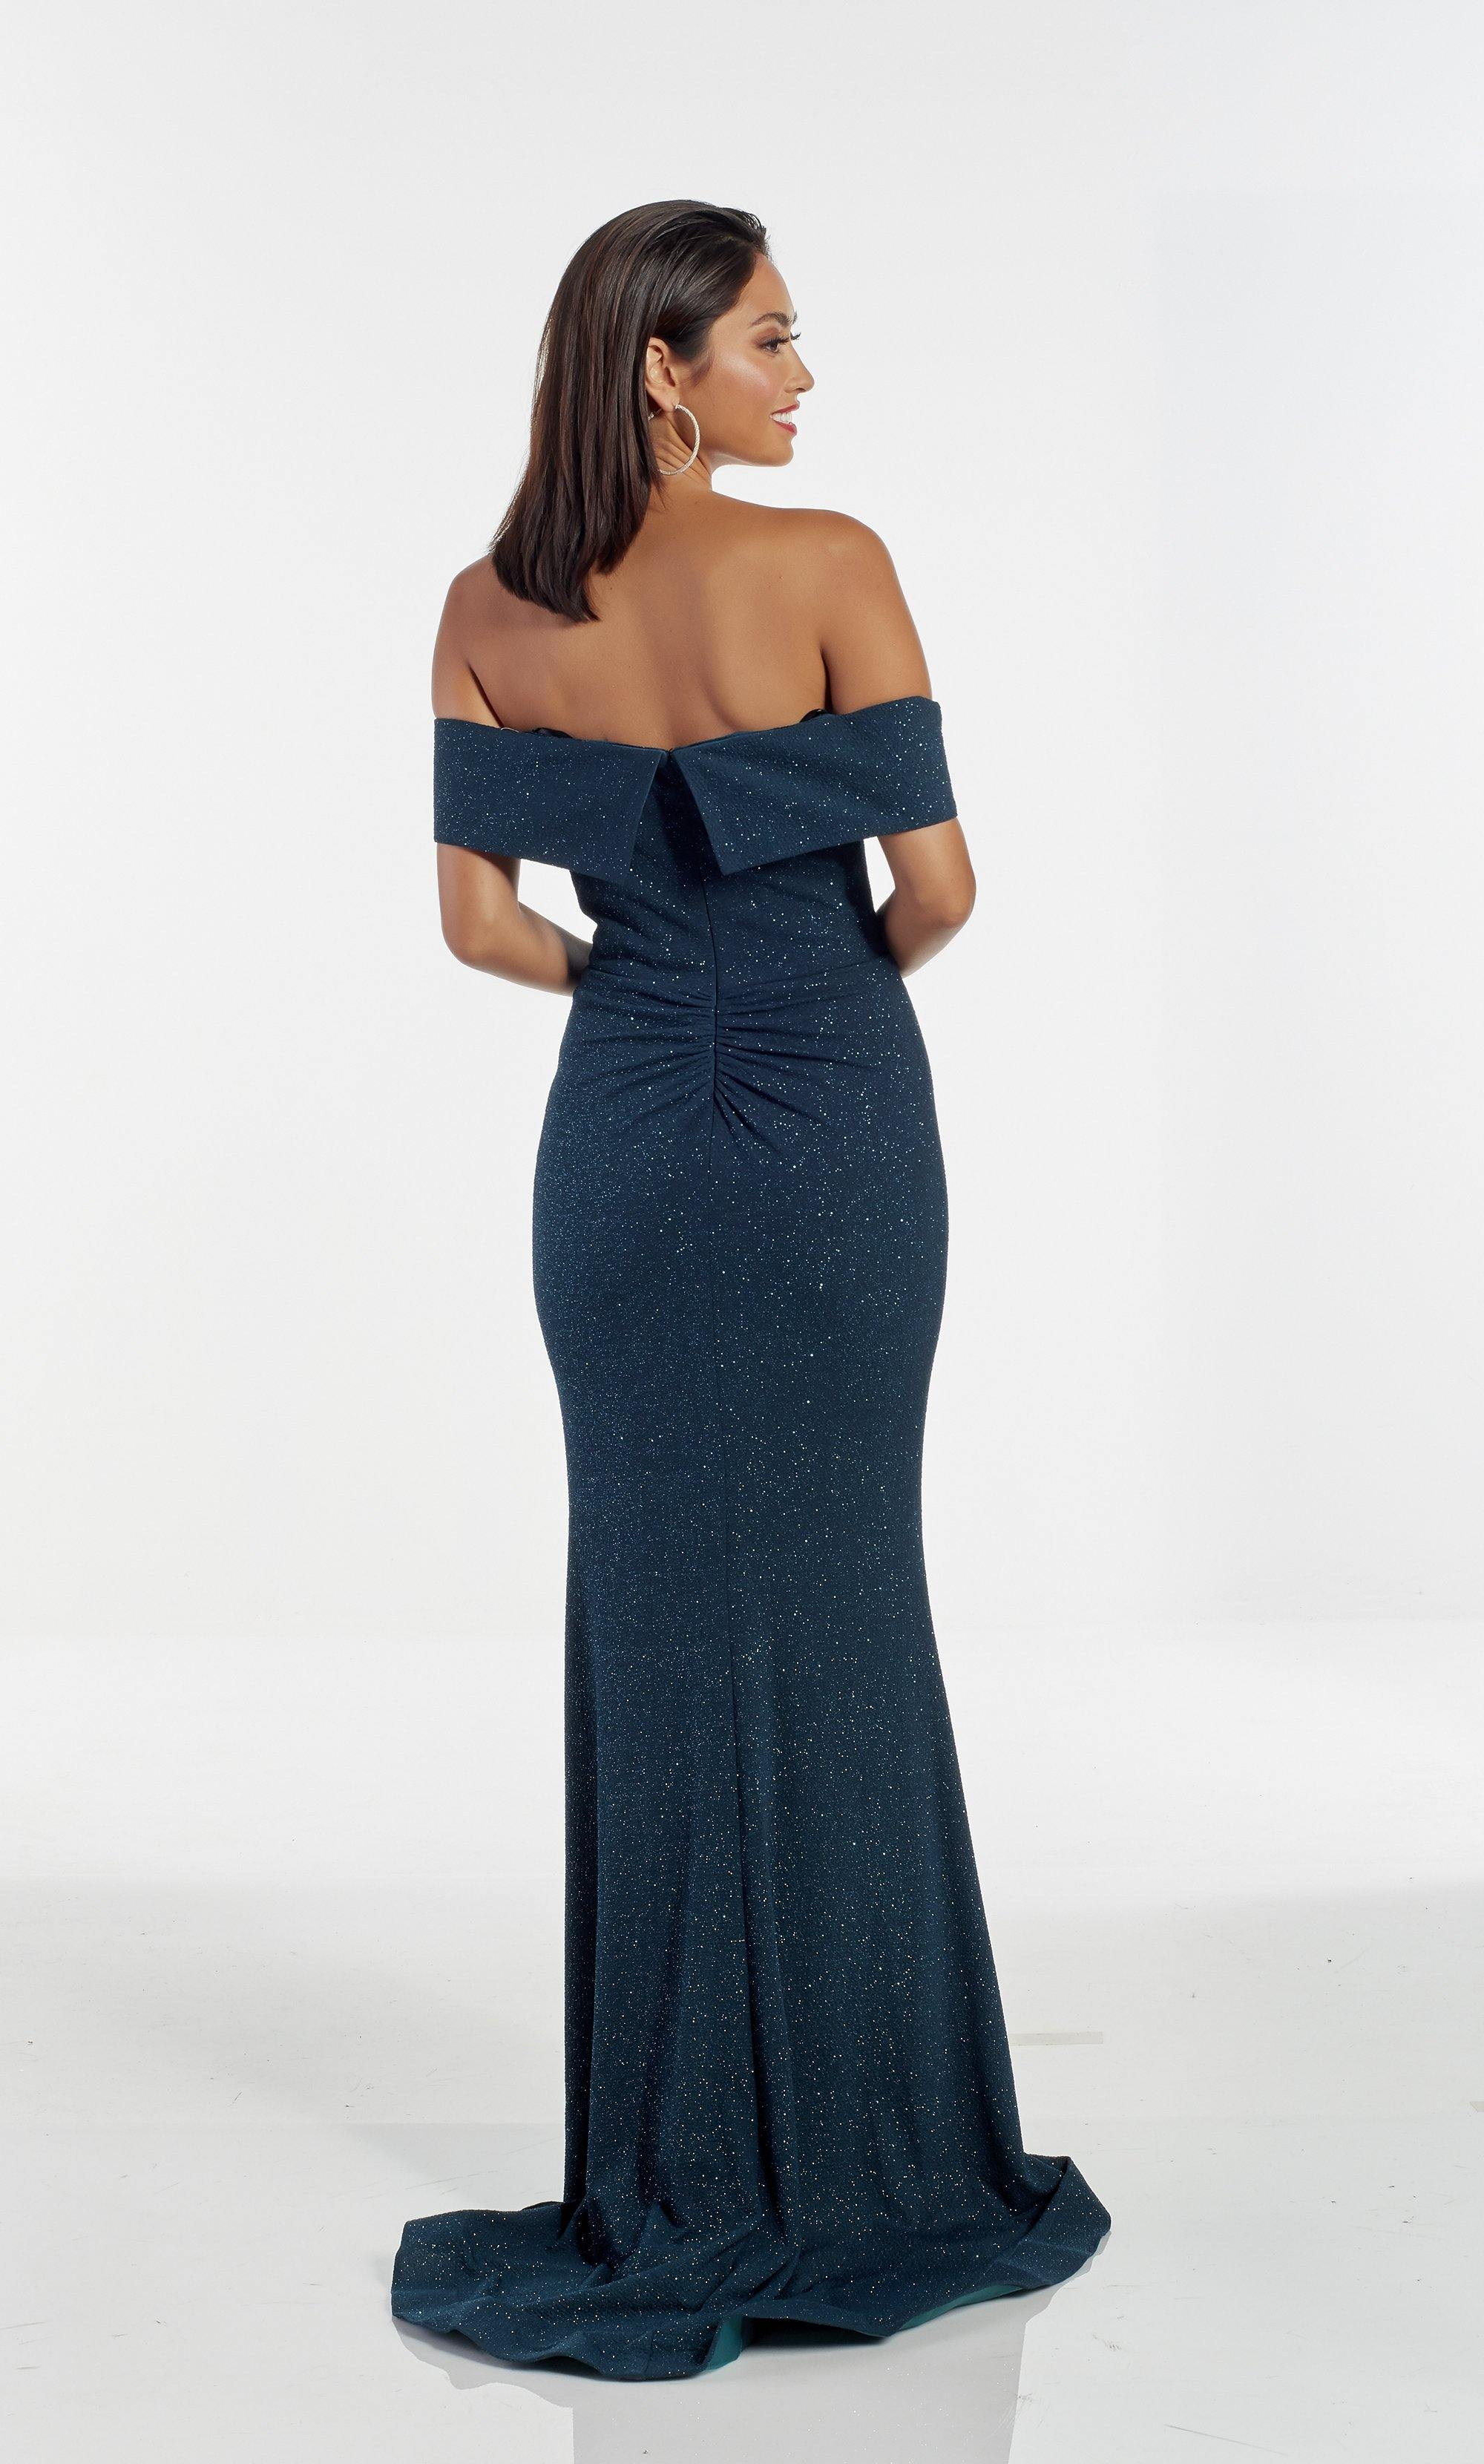 Peacock glitter jersey off the shoulder evening dress